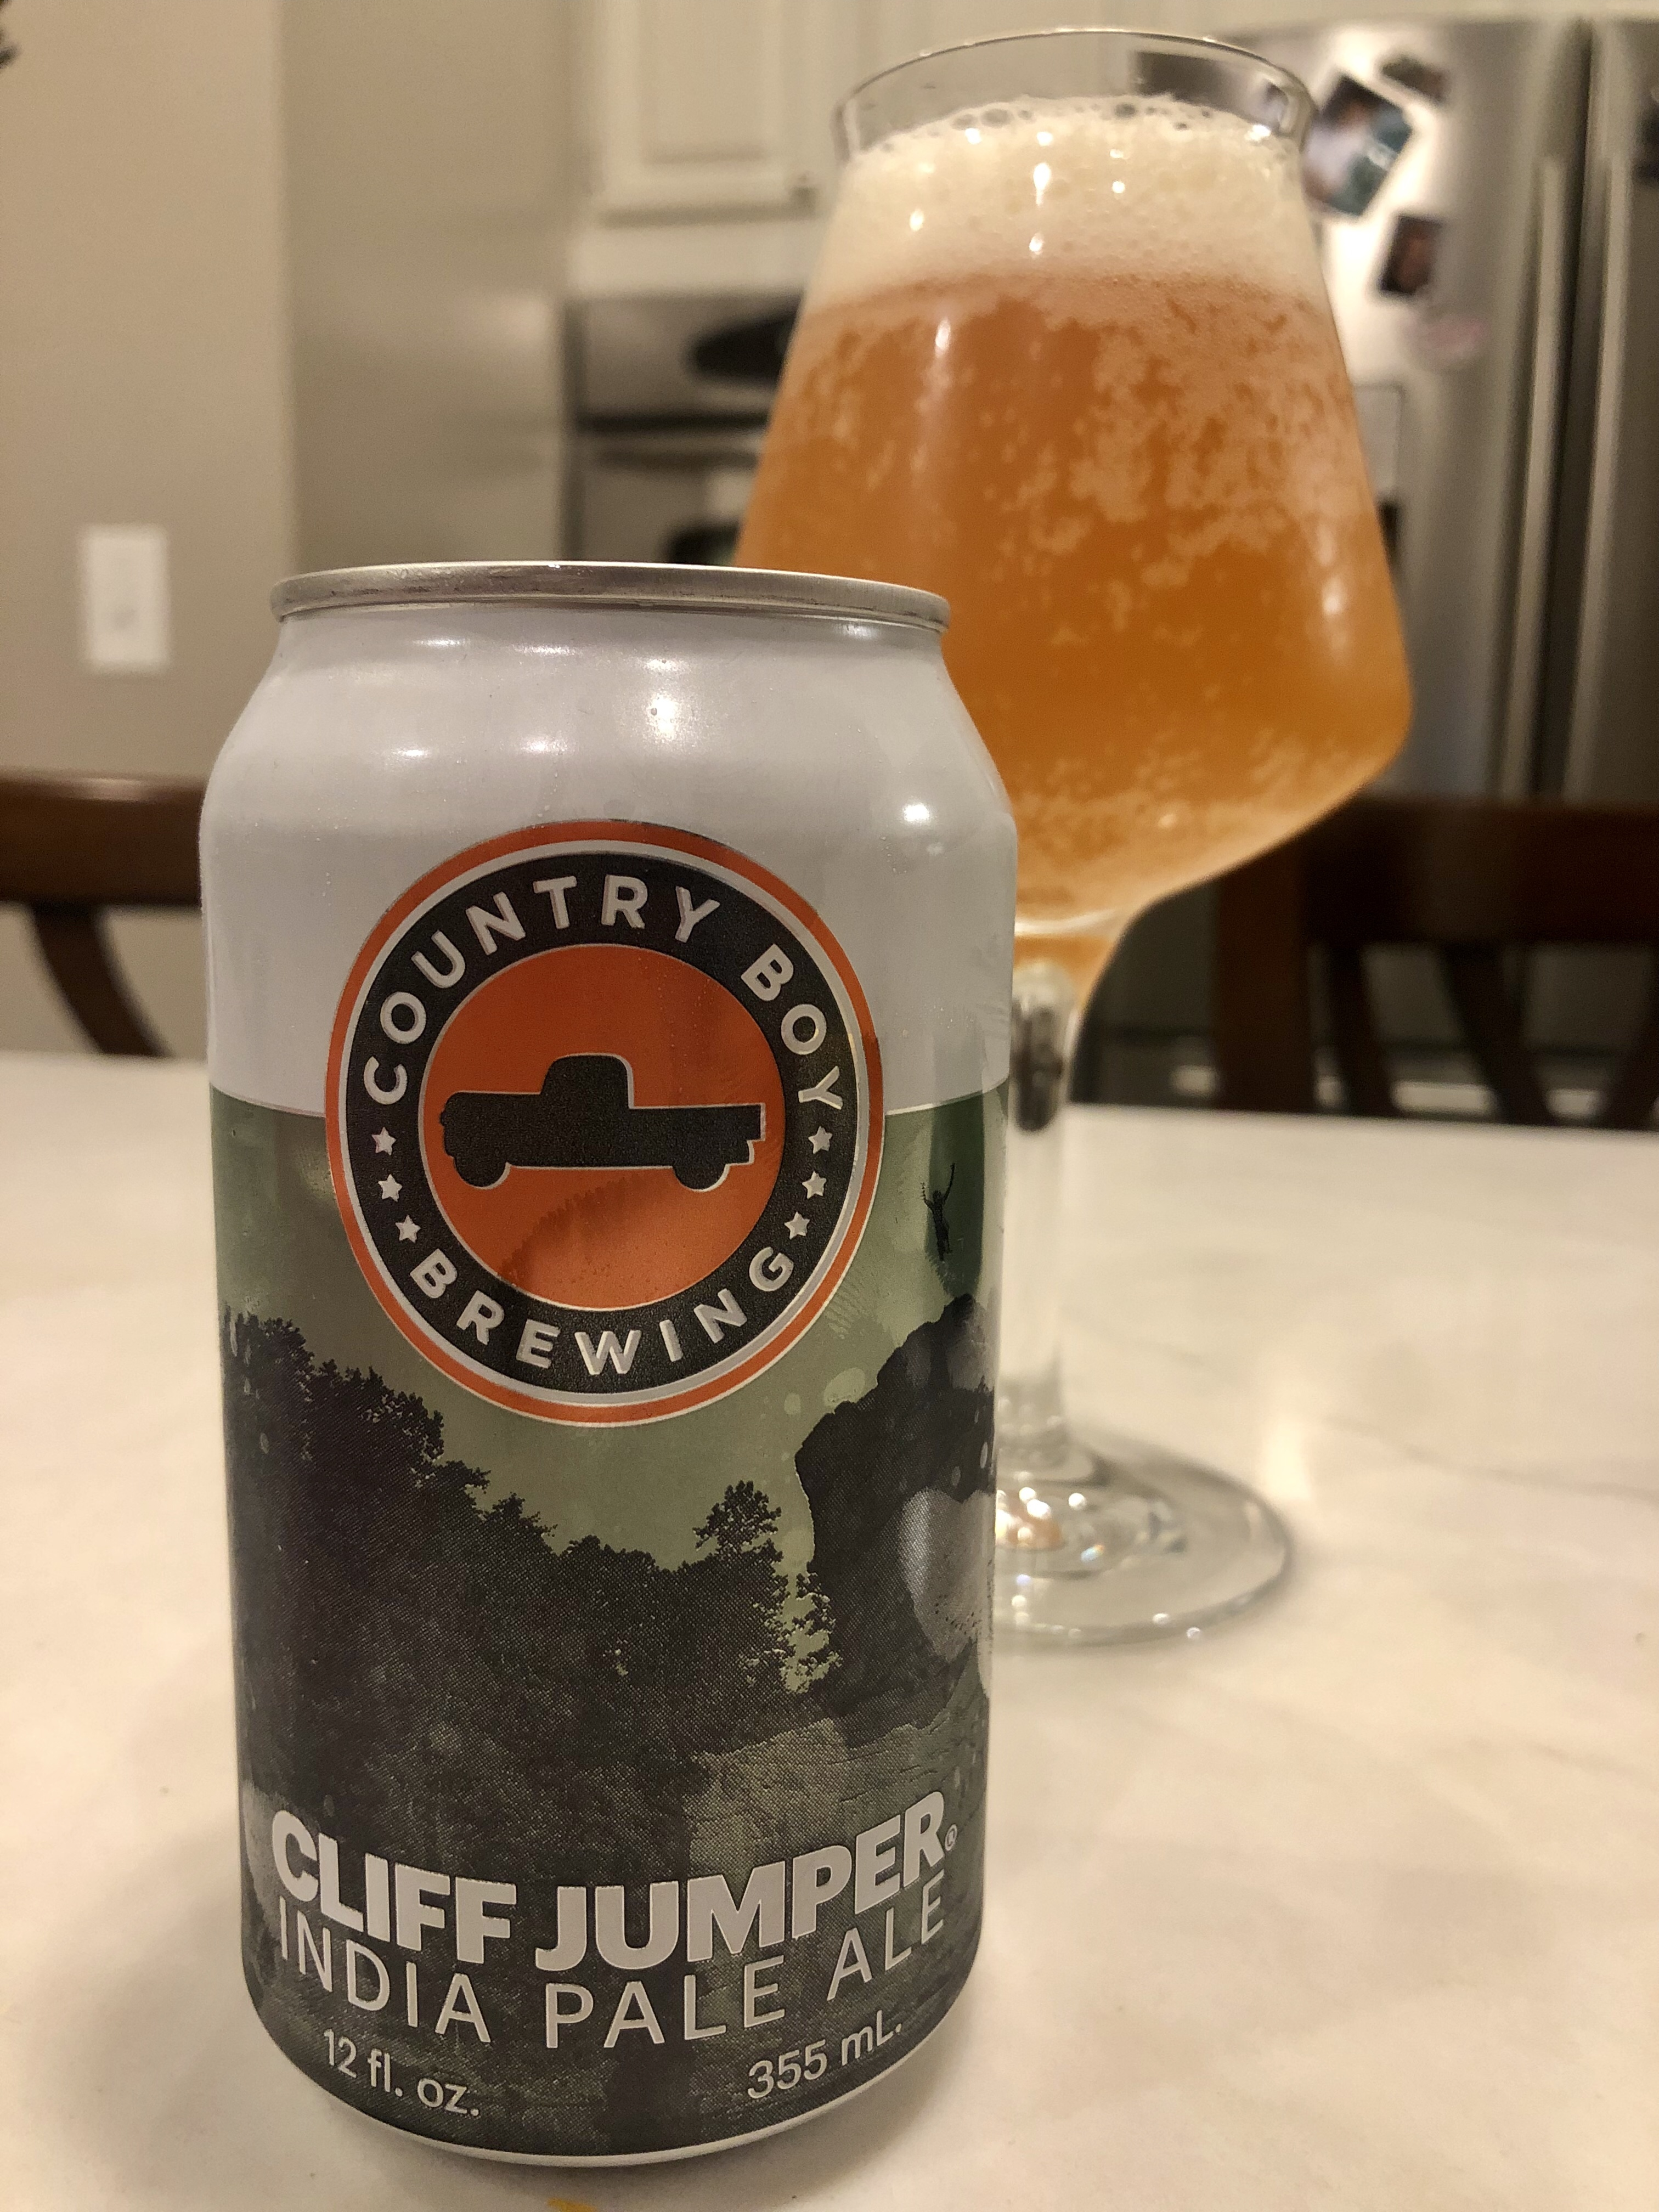 931. Country Boy Brewing - Cliff Jumper IPA